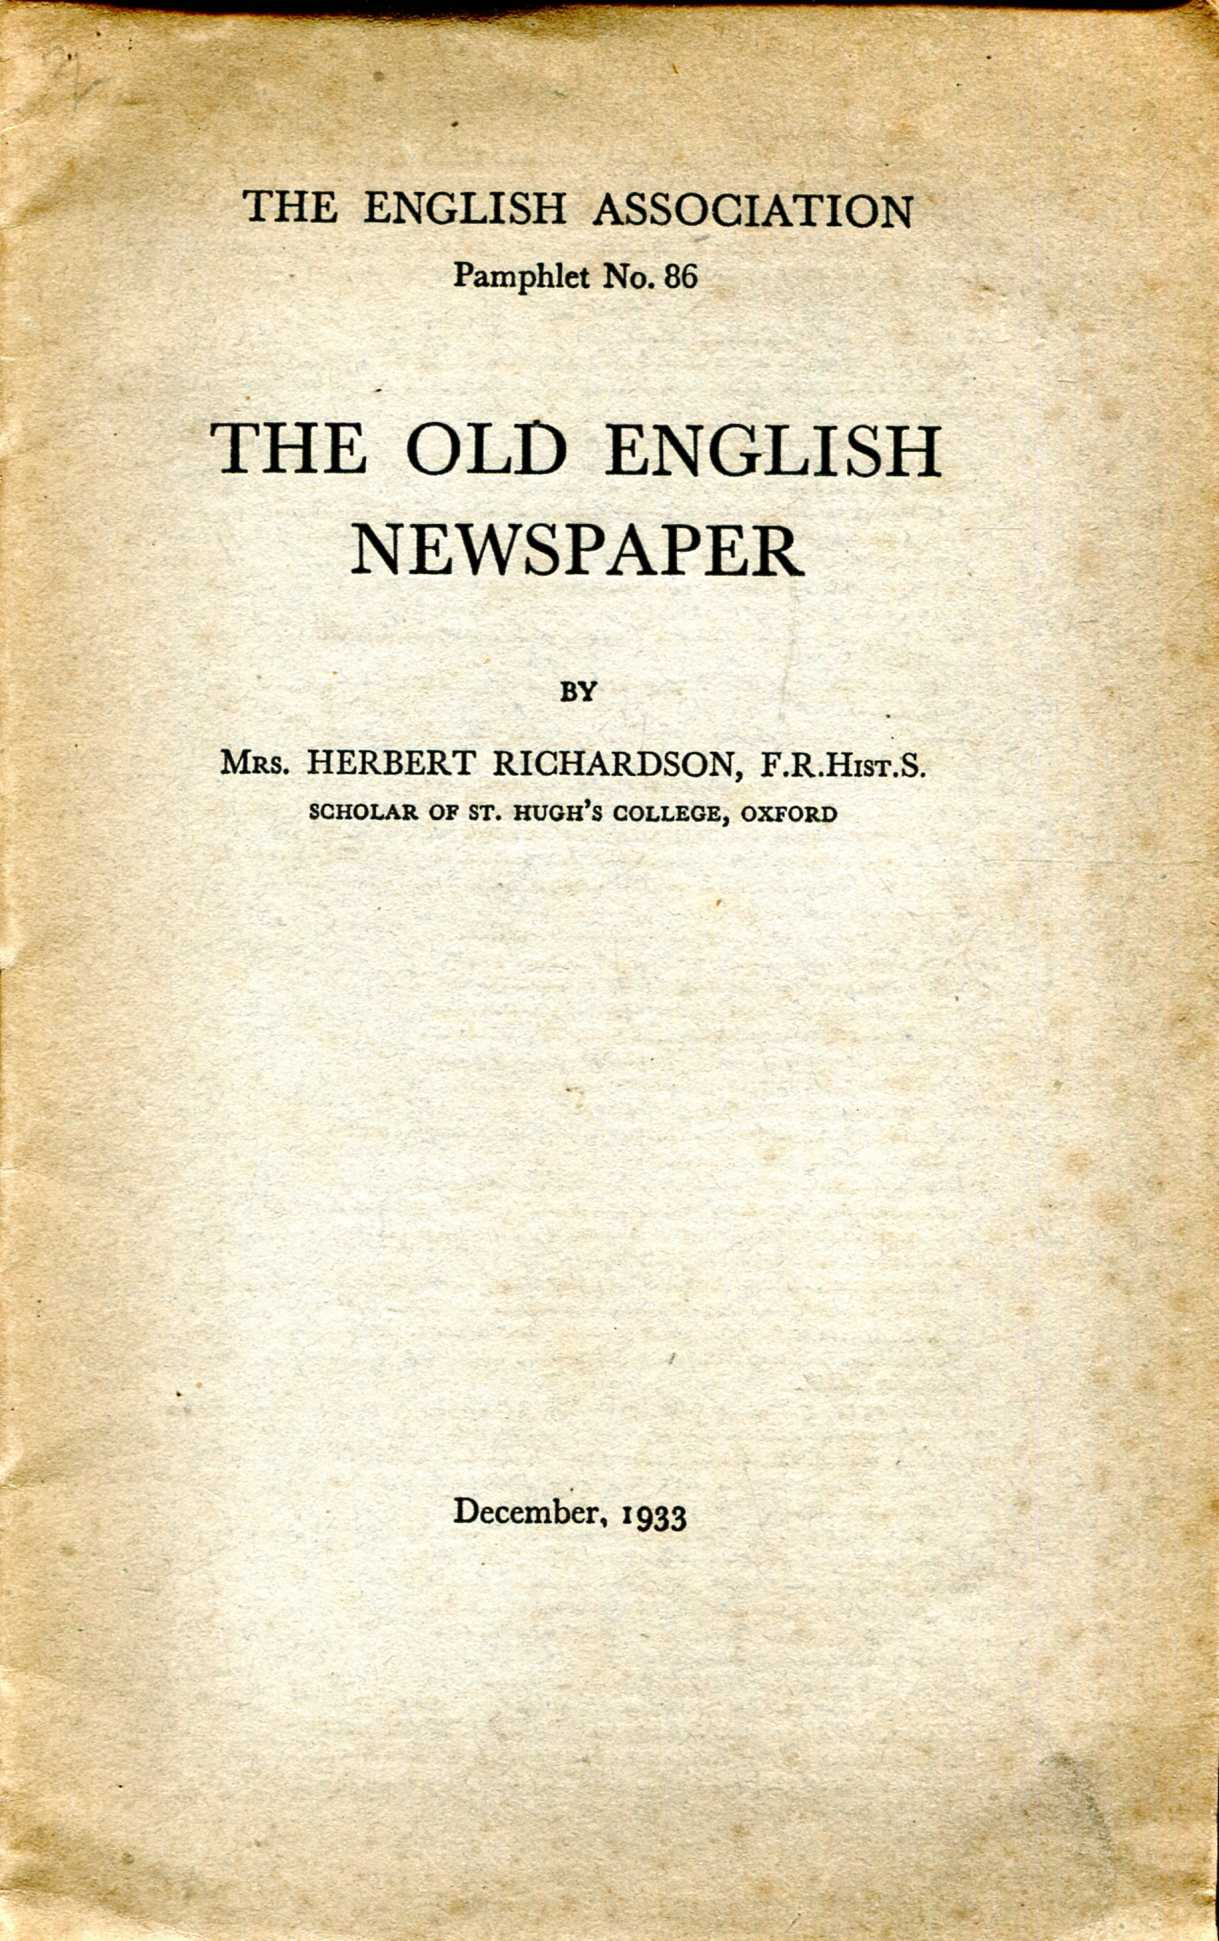 Image for The Old English Newspaper (The English Association Pamphlet No. 86)